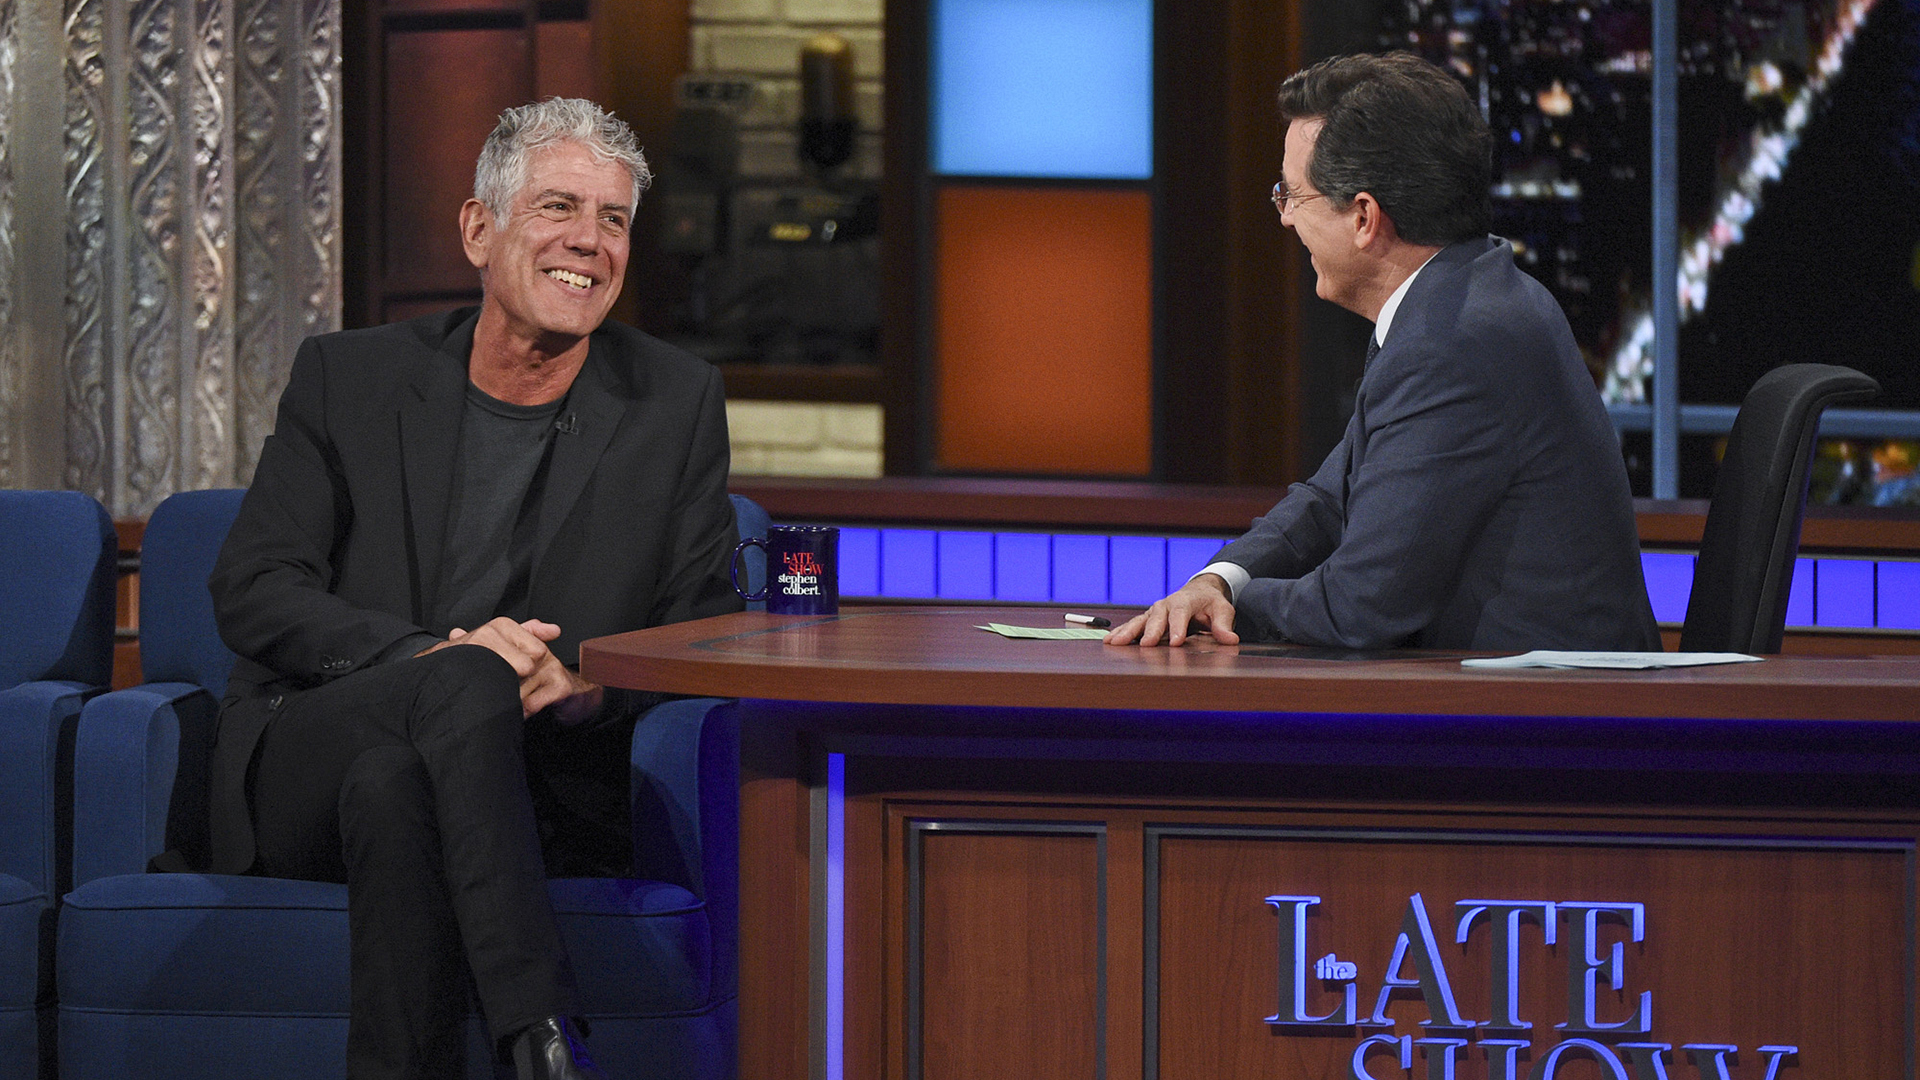 Anthony Bourdain and Stephen Colbert